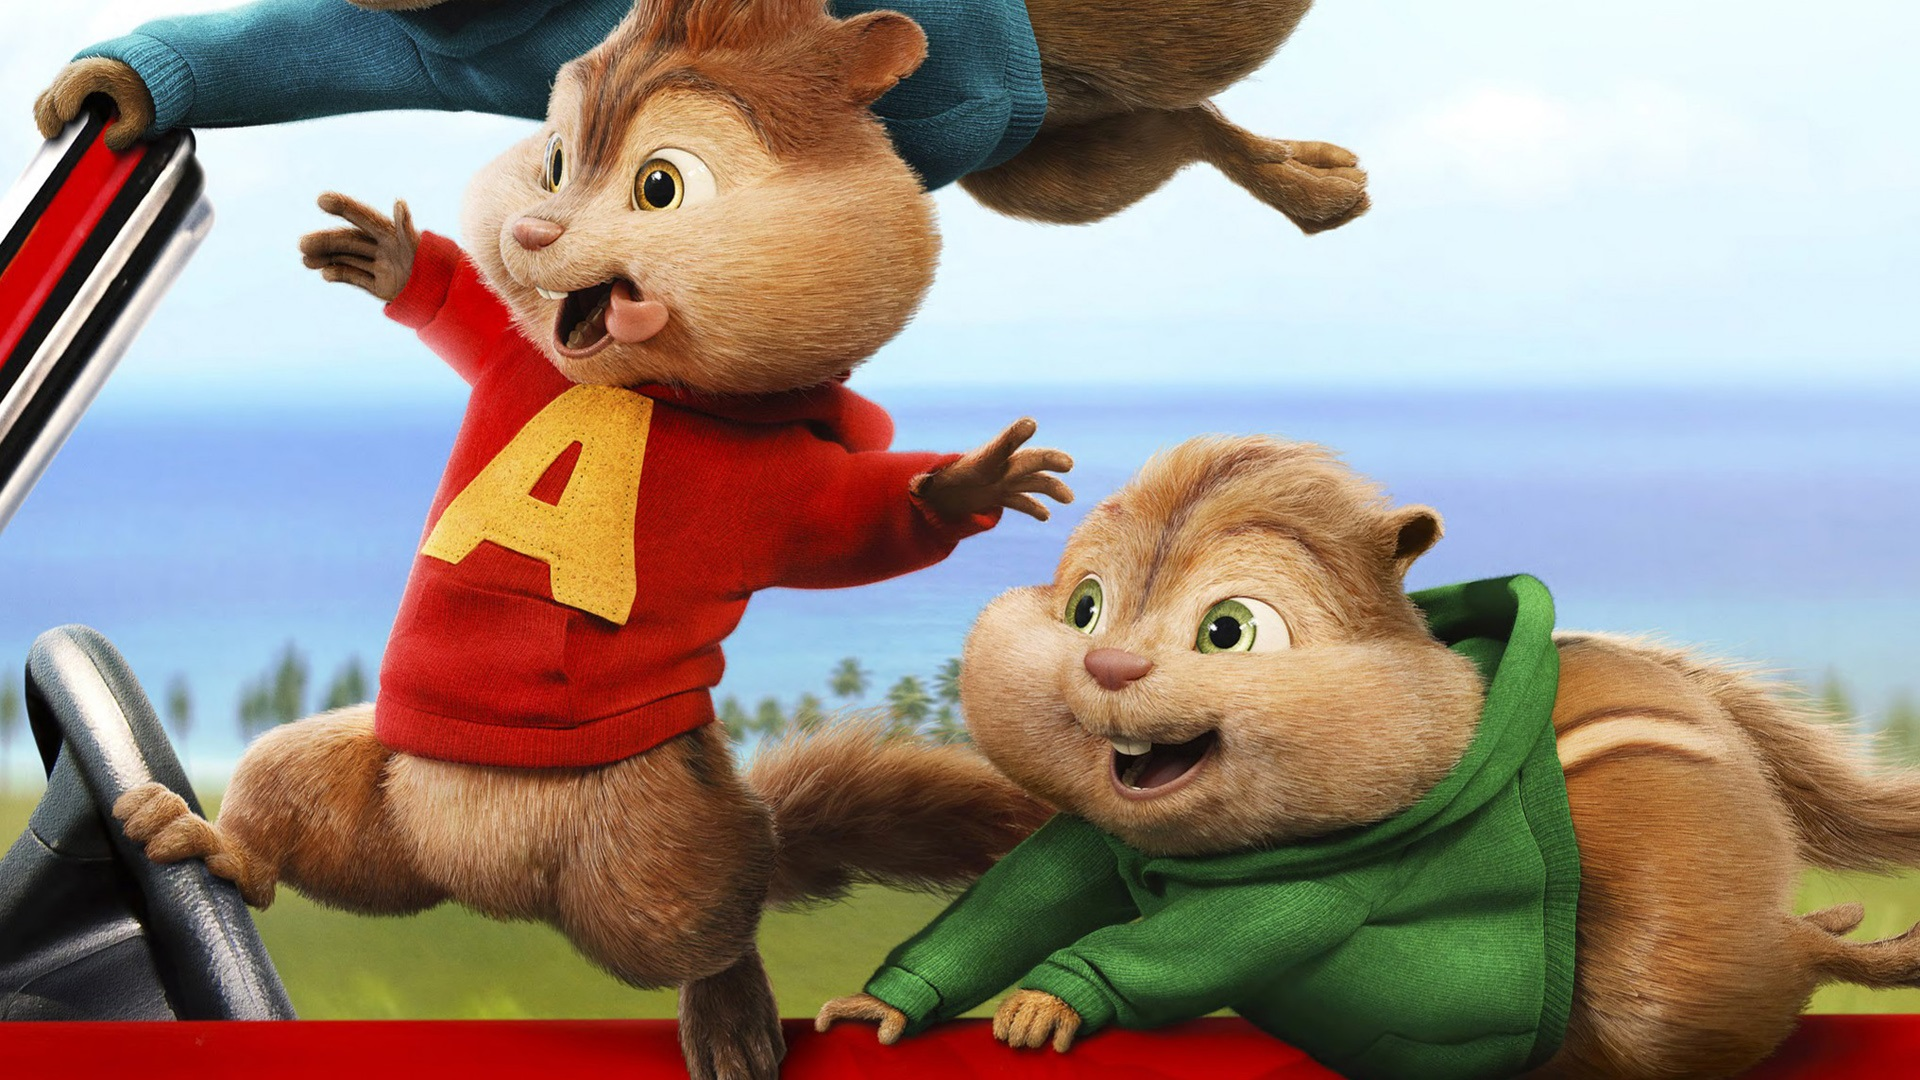 Wallpaper Alvin And The Chipmunks The Road Chip 2015 Movie